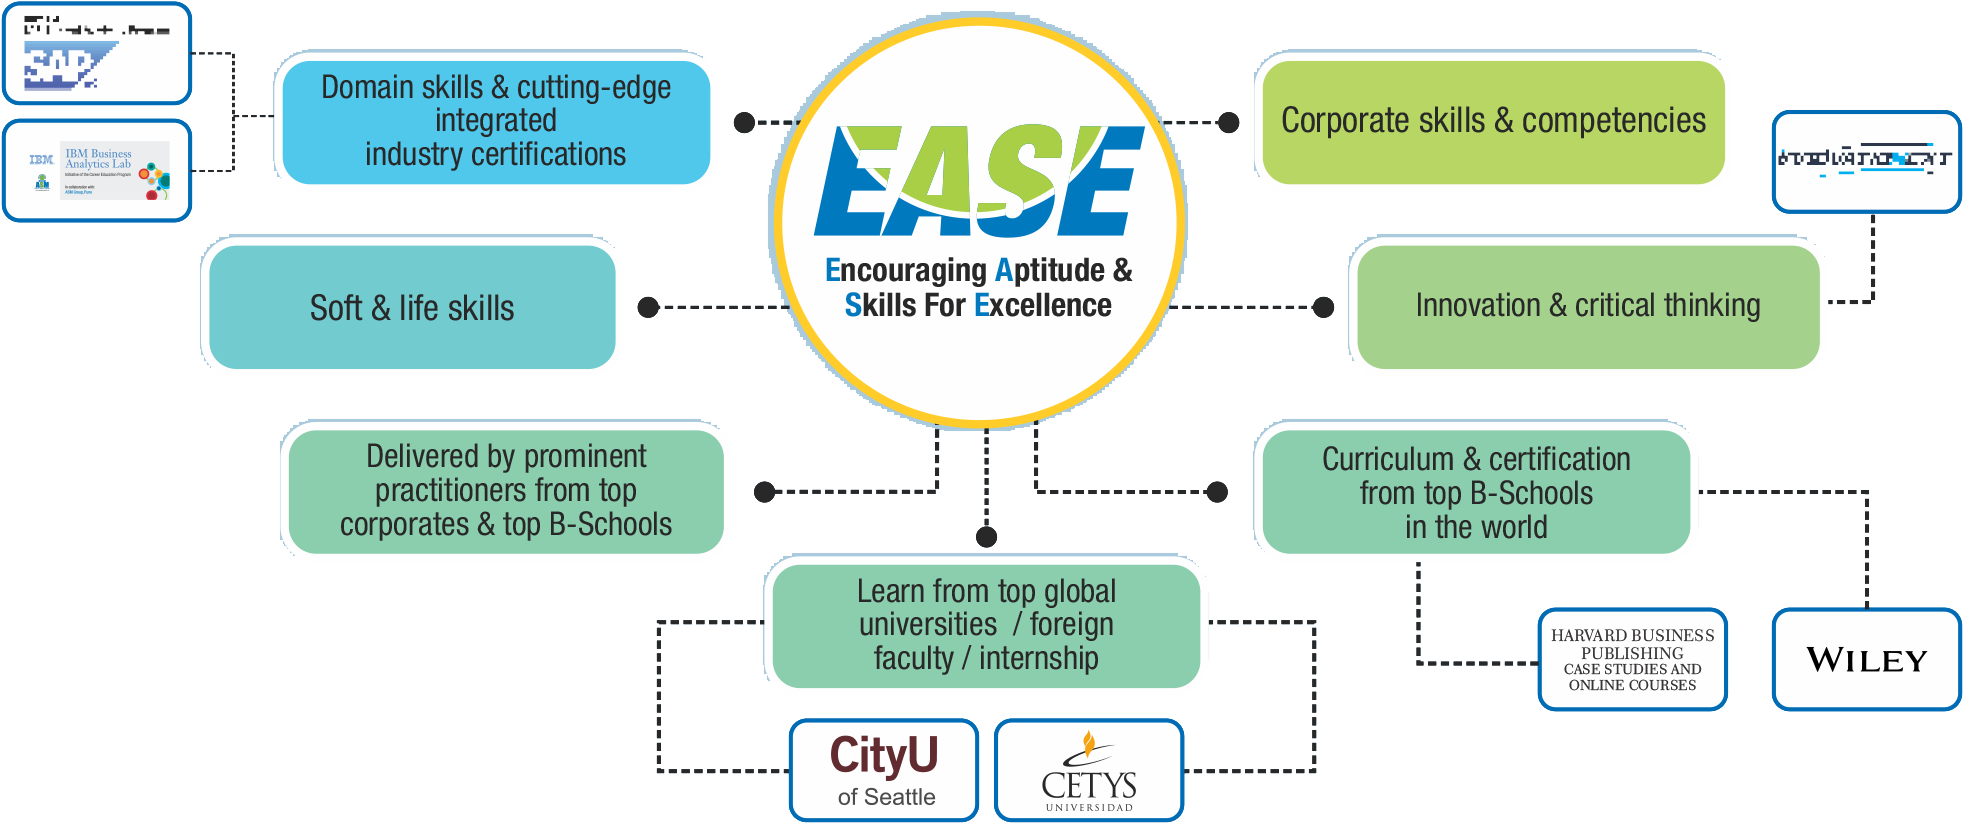 EASE Program - Encouraging Aptitude & Skill for Excellence